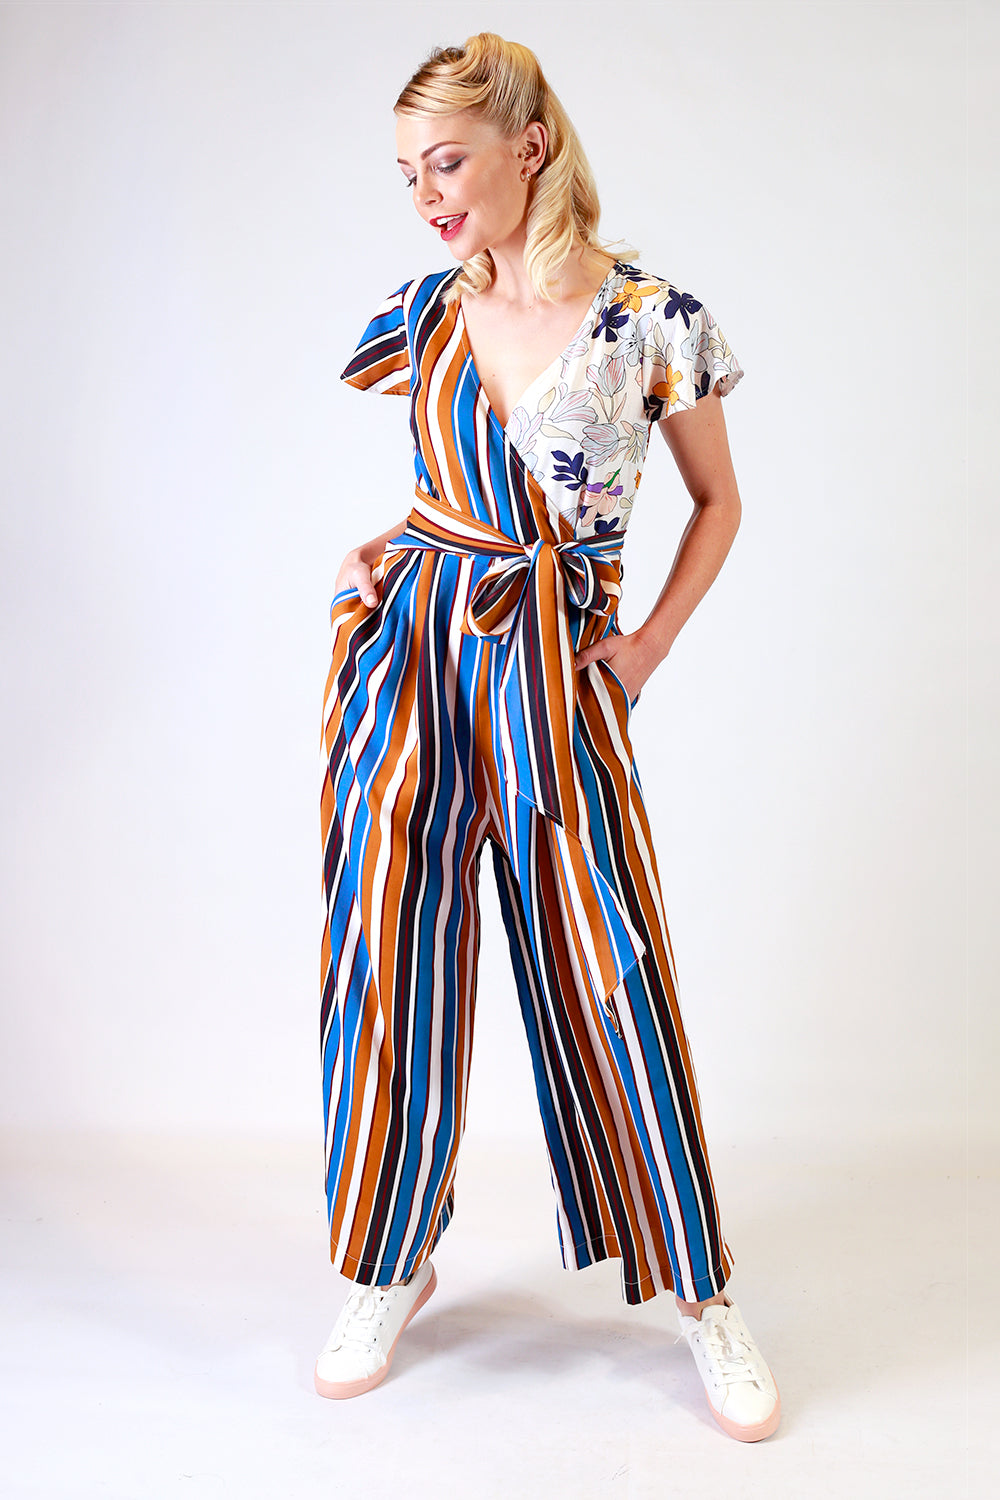 The Mailman Jumpsuit | Jumpsuits NZ | Wide Leg Jumpsuit | Jumpsuit NZ | Annah Stretton Fashion NZ